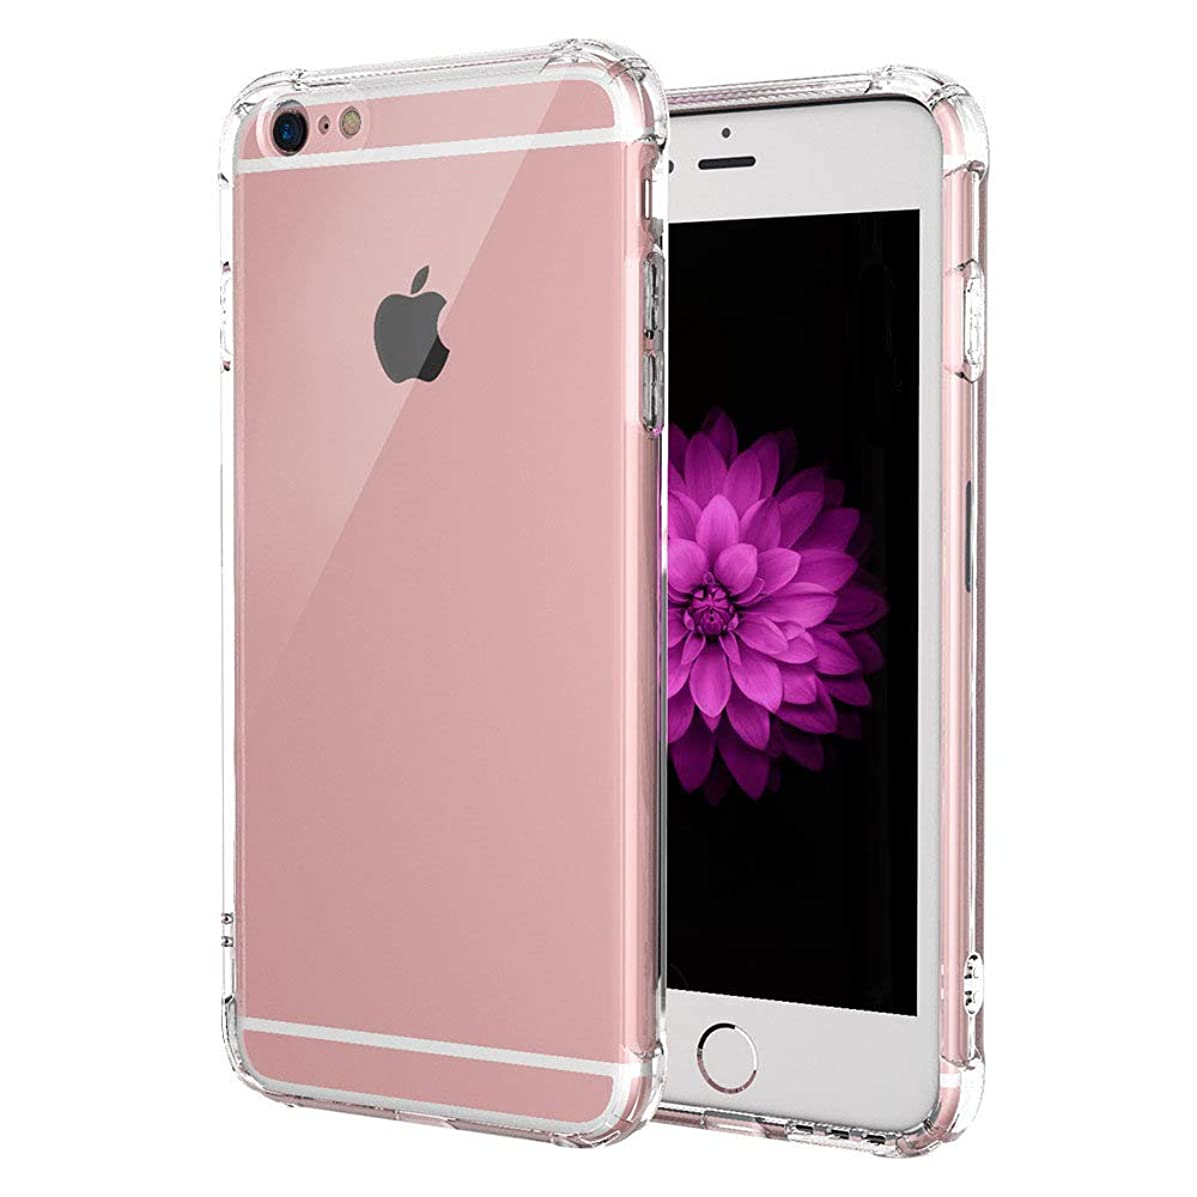 JanCalm Slim Clear Soft TPU Case for iPhone 6 Plus and iPhone 6s Plus, Soft Flexible Protective Cover Compatible for Apple iPhone 6/6S Plus (Clear)